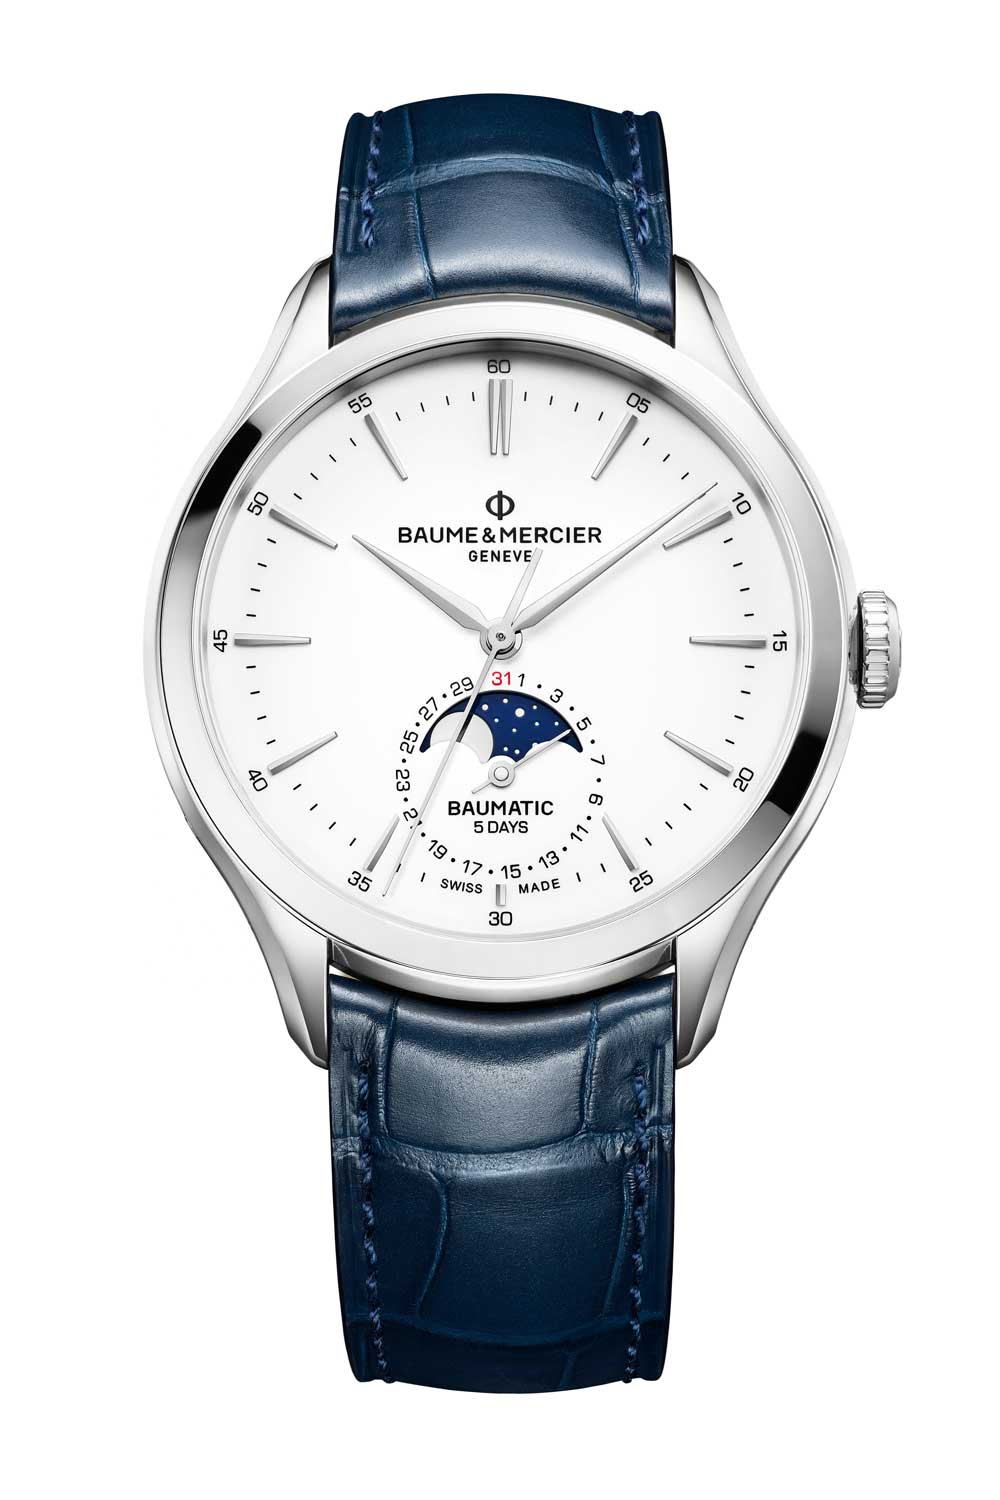 Clifton Baumatic Moon-Phase Date Automatic